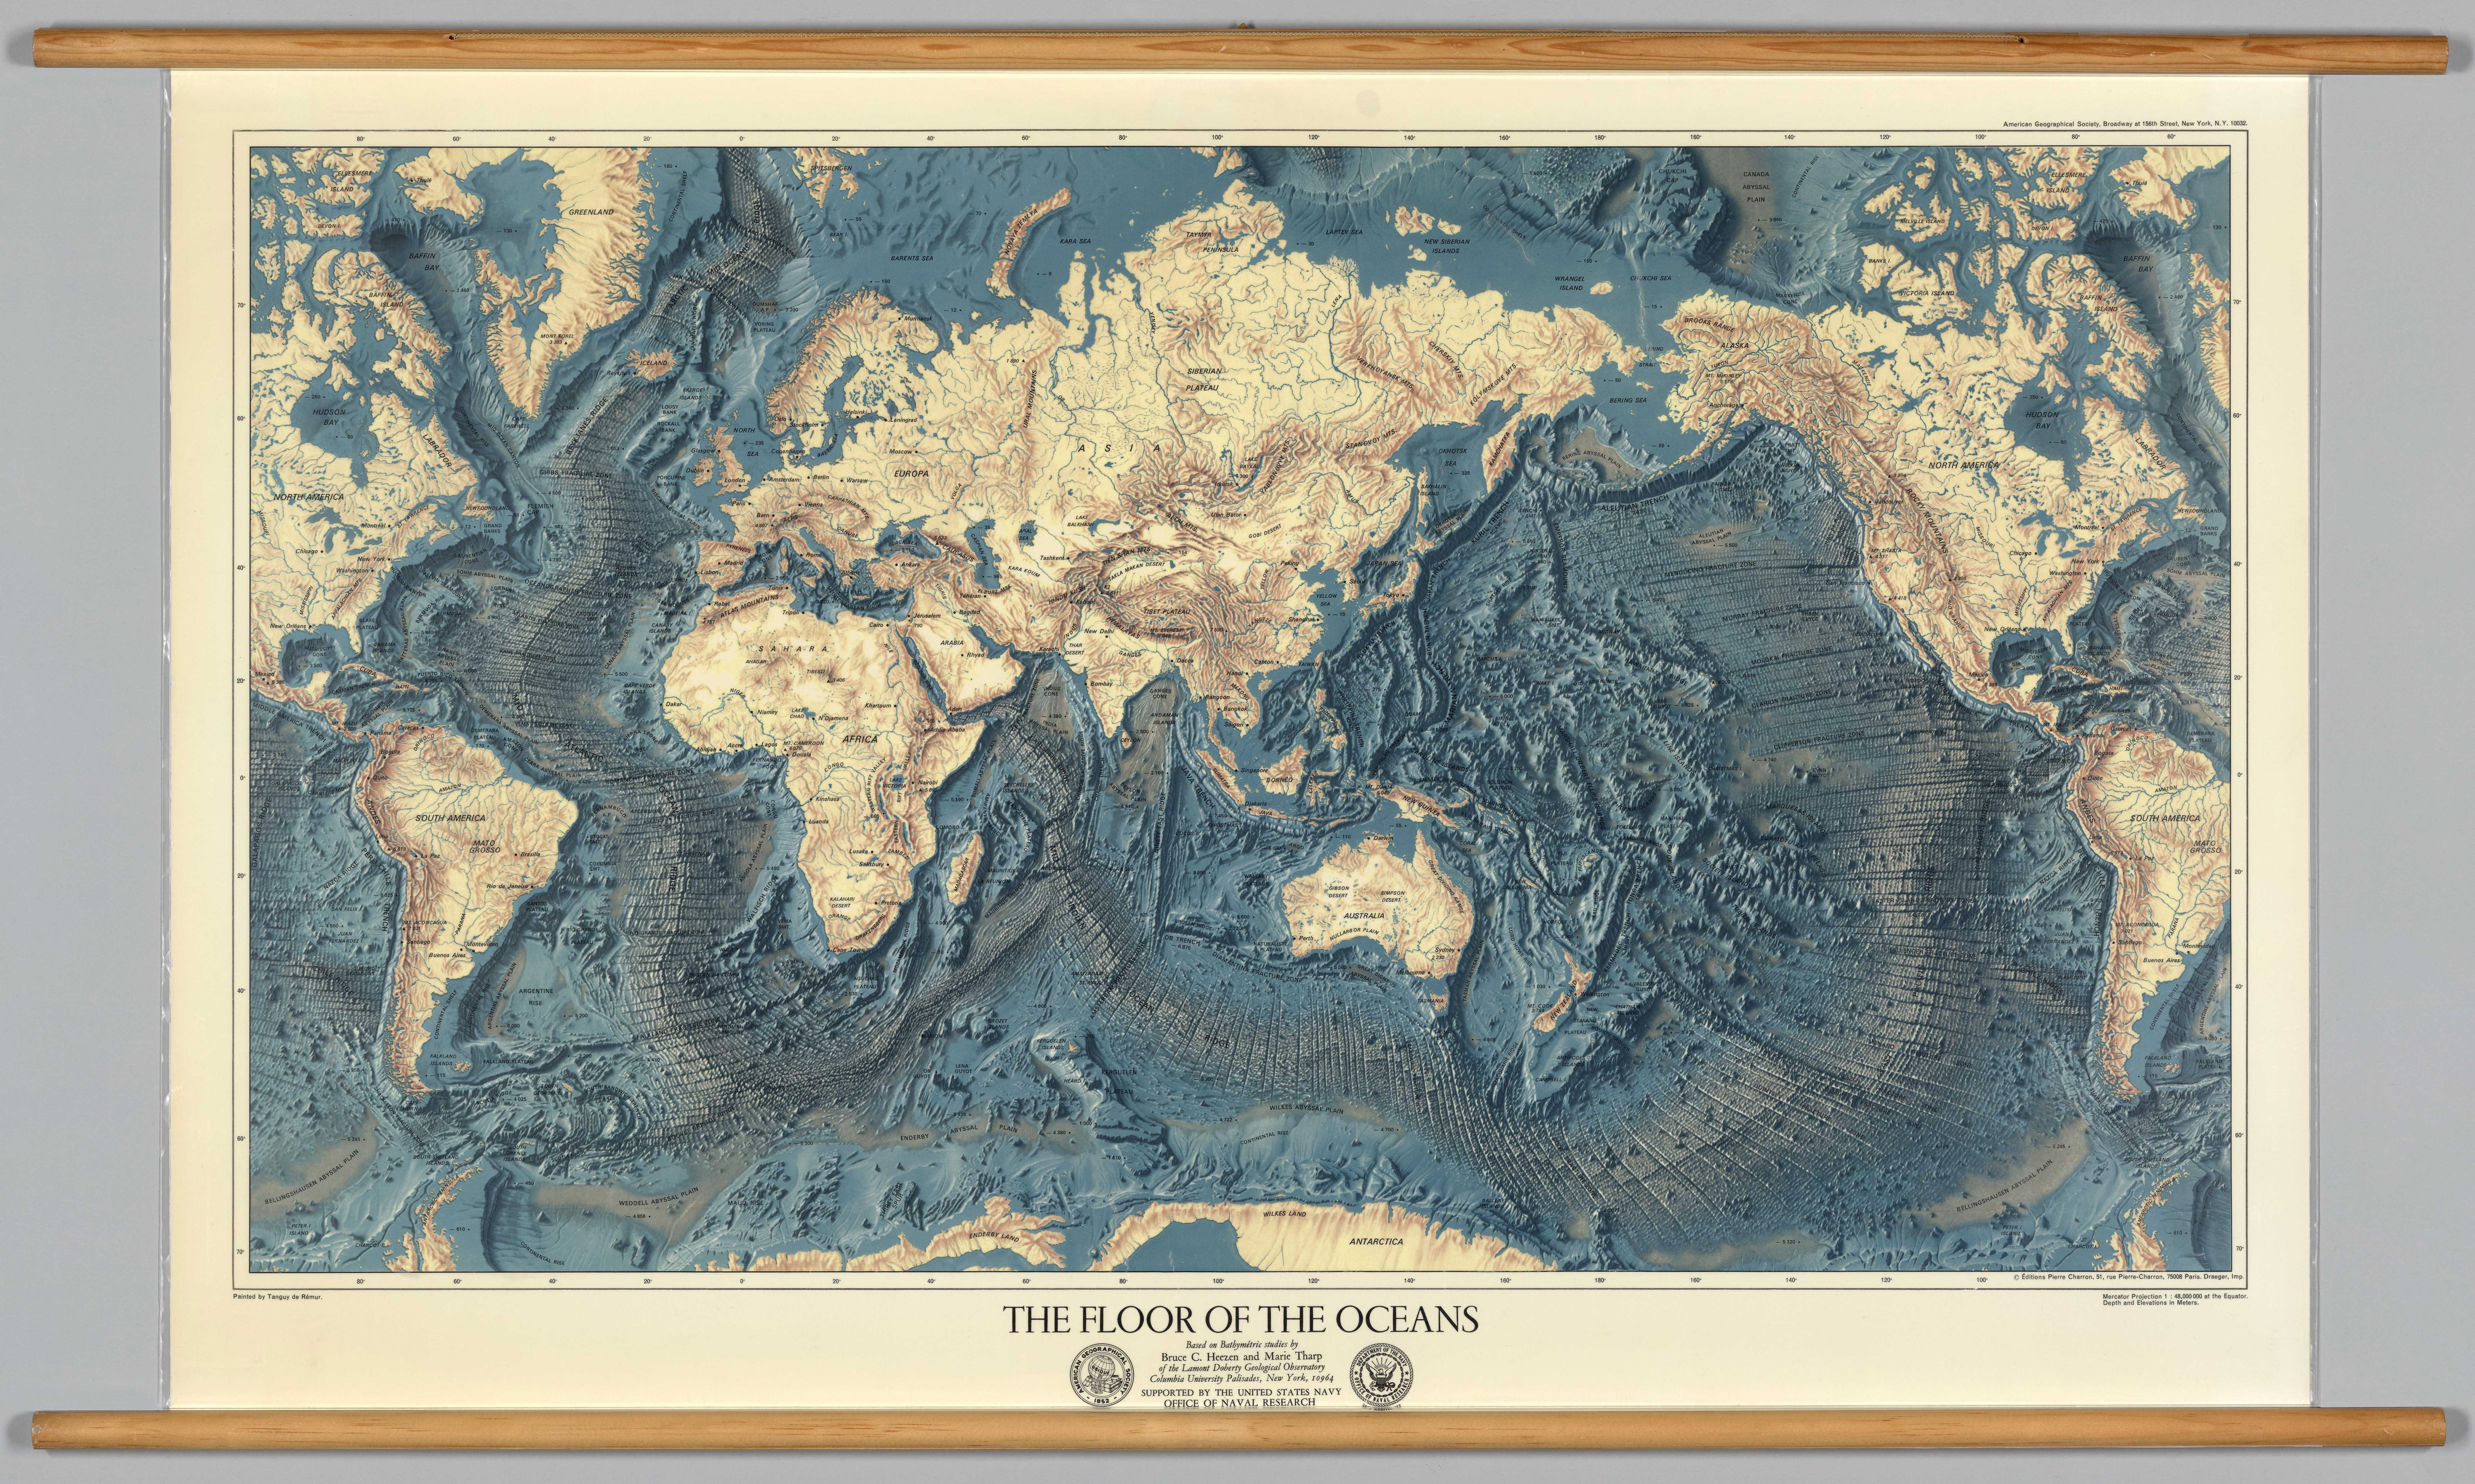 High Resolution Map Of The Worlds Ocean Floors AreWeDreaming - Map of world oceans